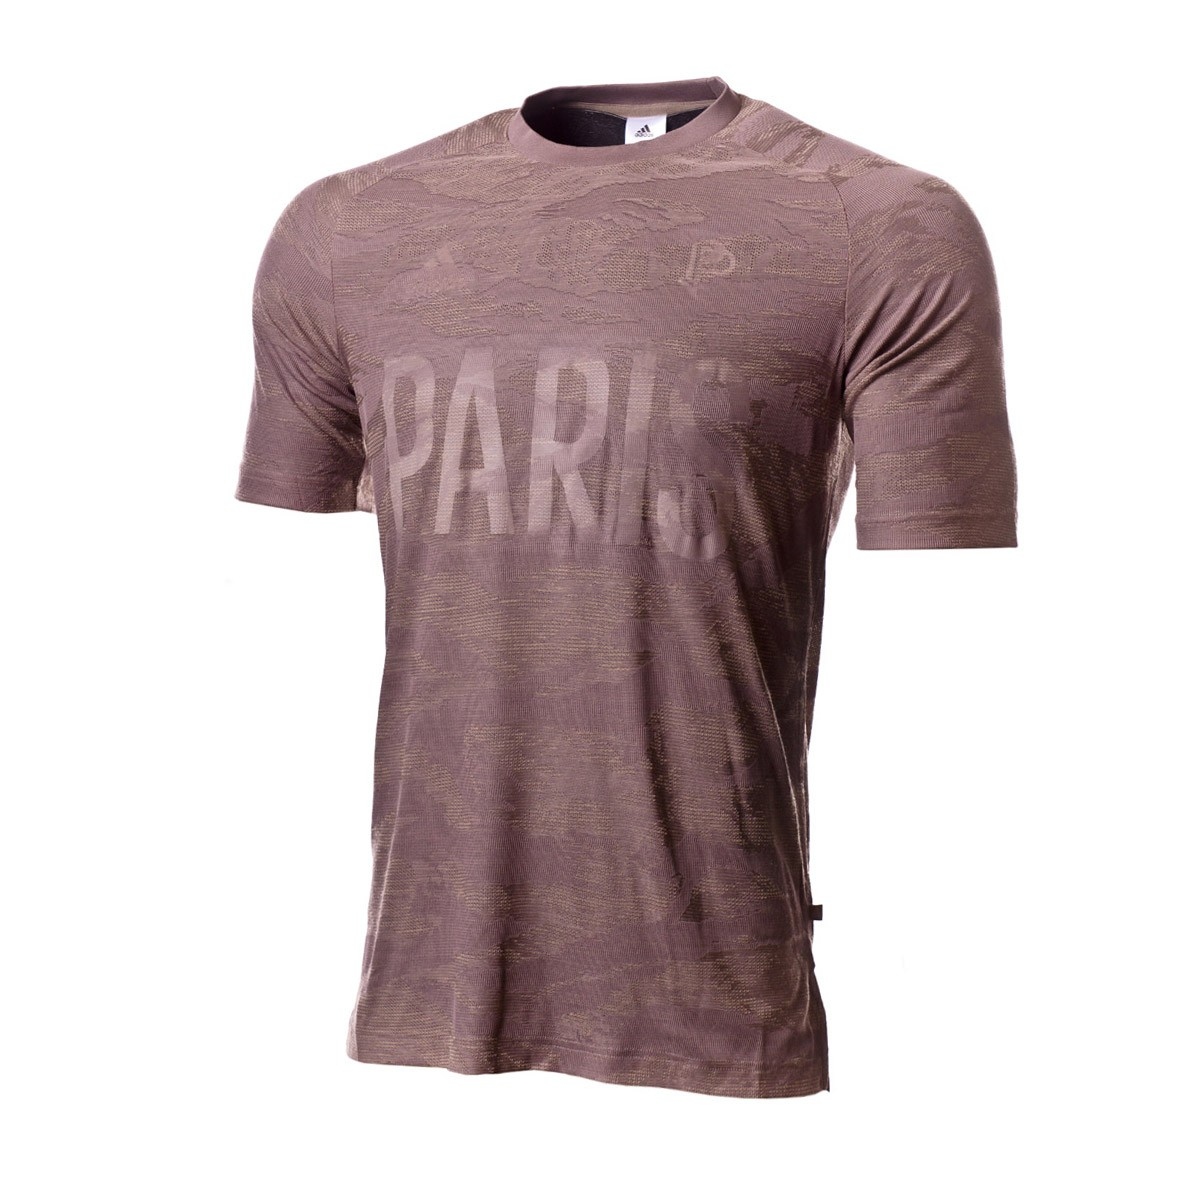 8a0a7c210a03 Jersey adidas Pogba Tango Graphic Clear brown - Football store ...